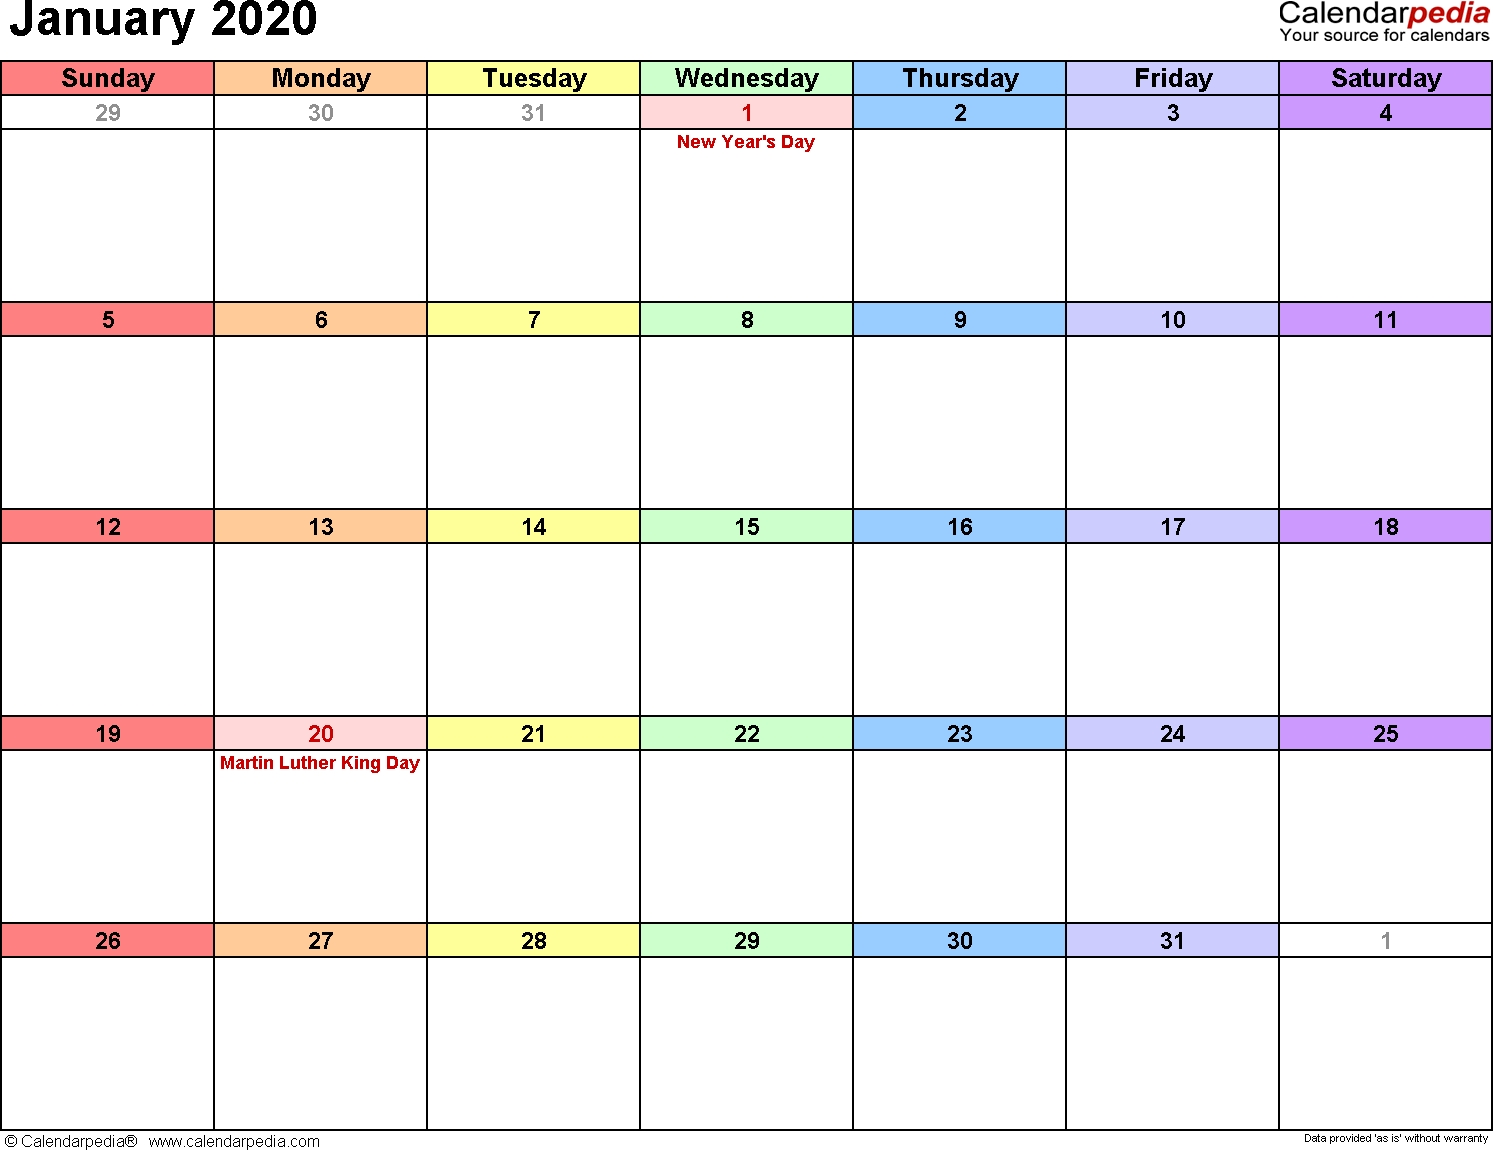 January 2020 Calendars For Word, Excel & Pdf-January 2020 Calendar Page